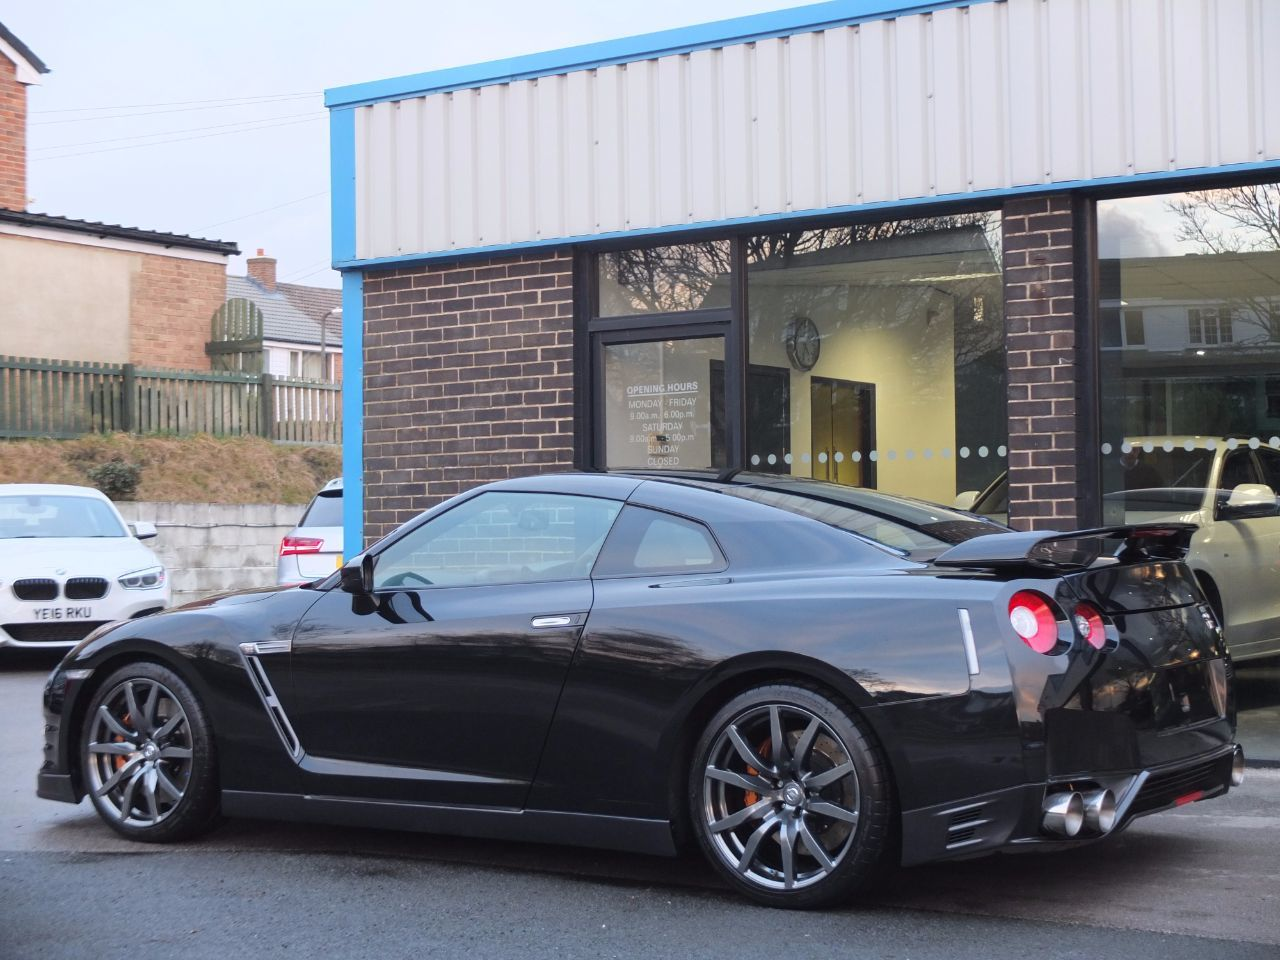 Nissan GT-R 3.8 Premium Edition Auto.(Litchfield Stage 4 653bhp) Coupe Petrol Pearl Black